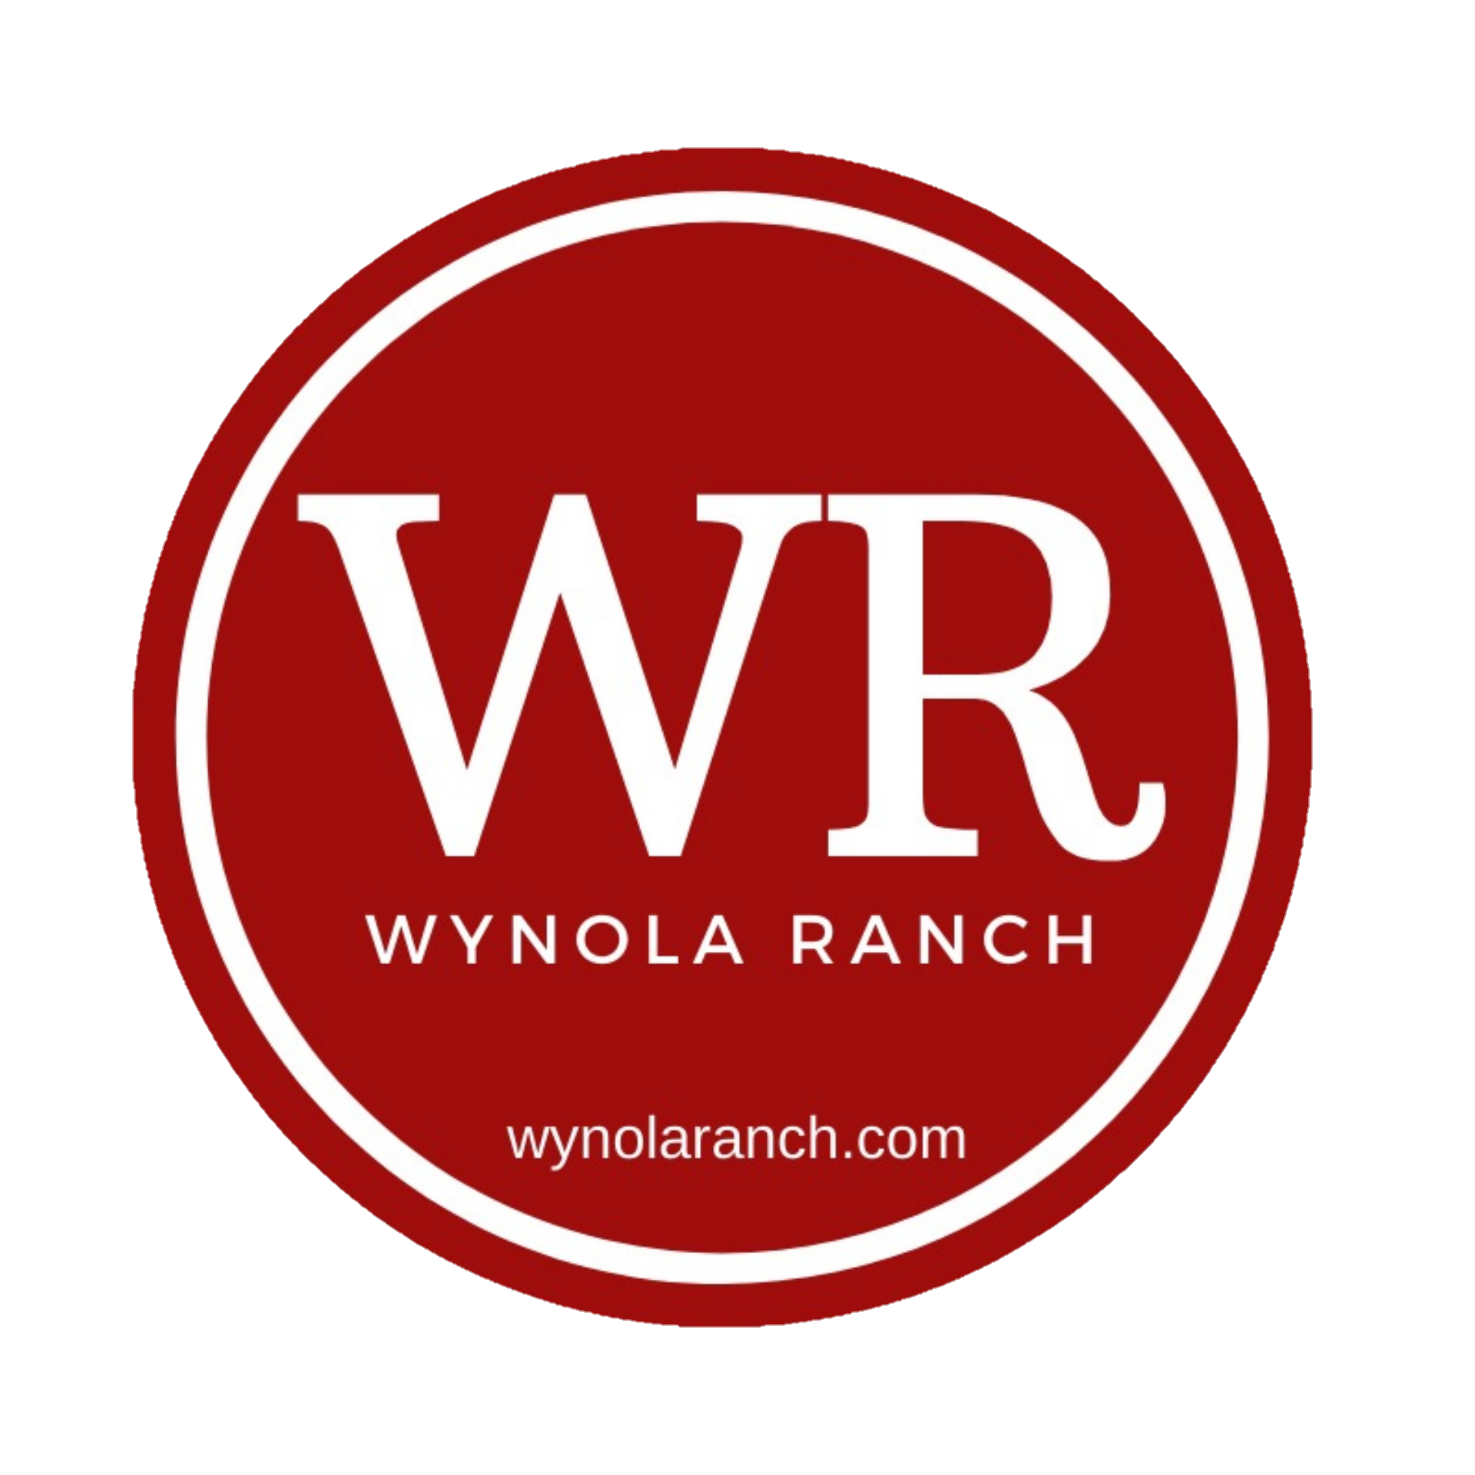 Wynola Ranch